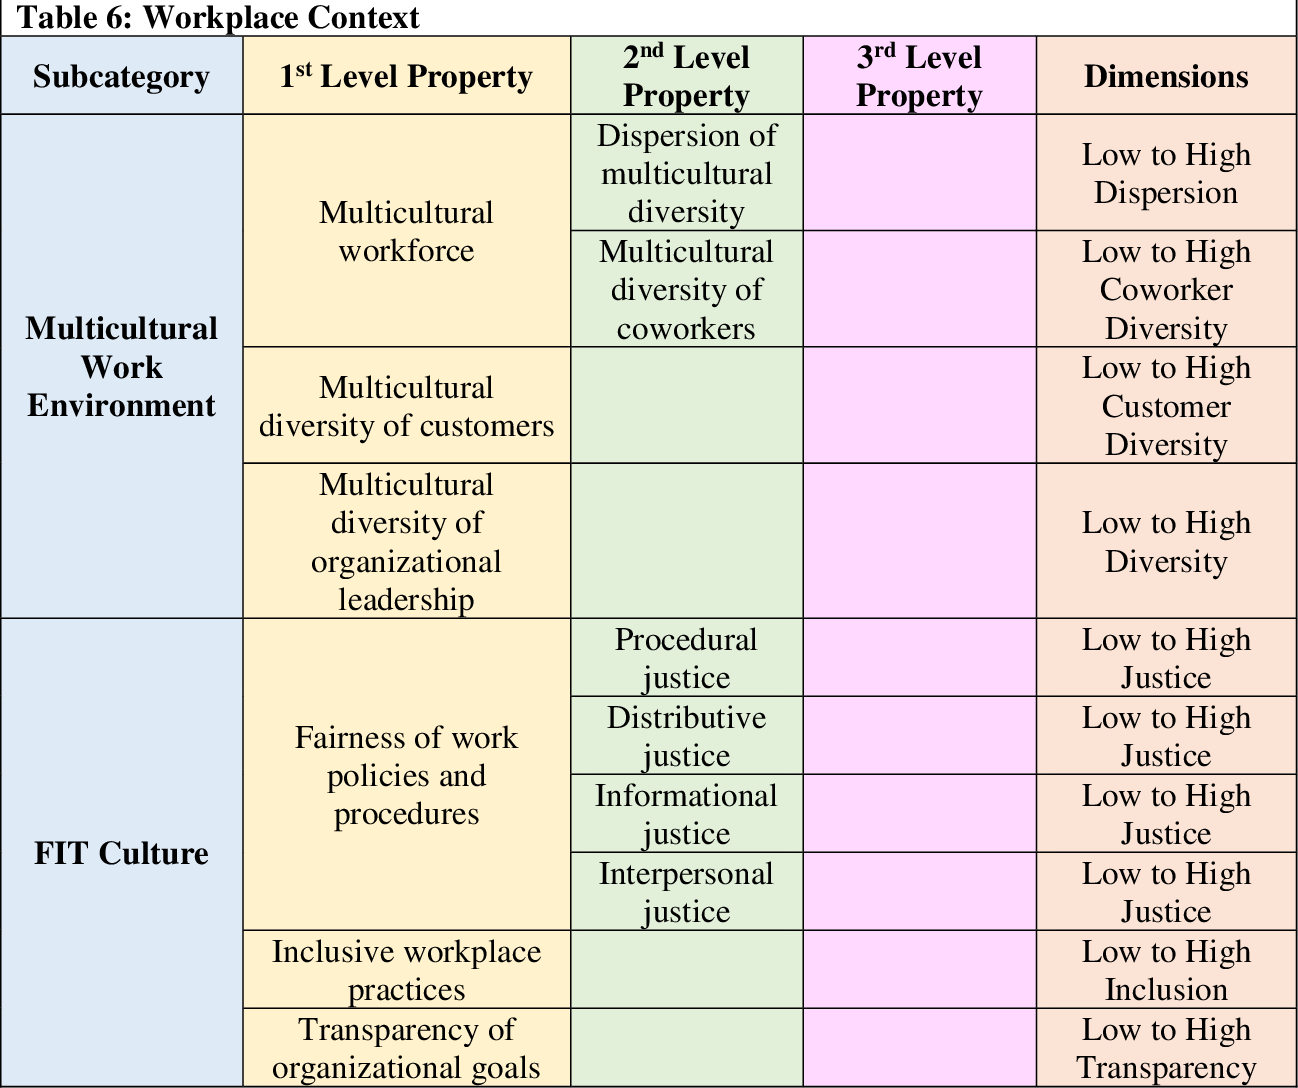 Table 6 from Intercultural Coworker Relationships (ICORs) in the